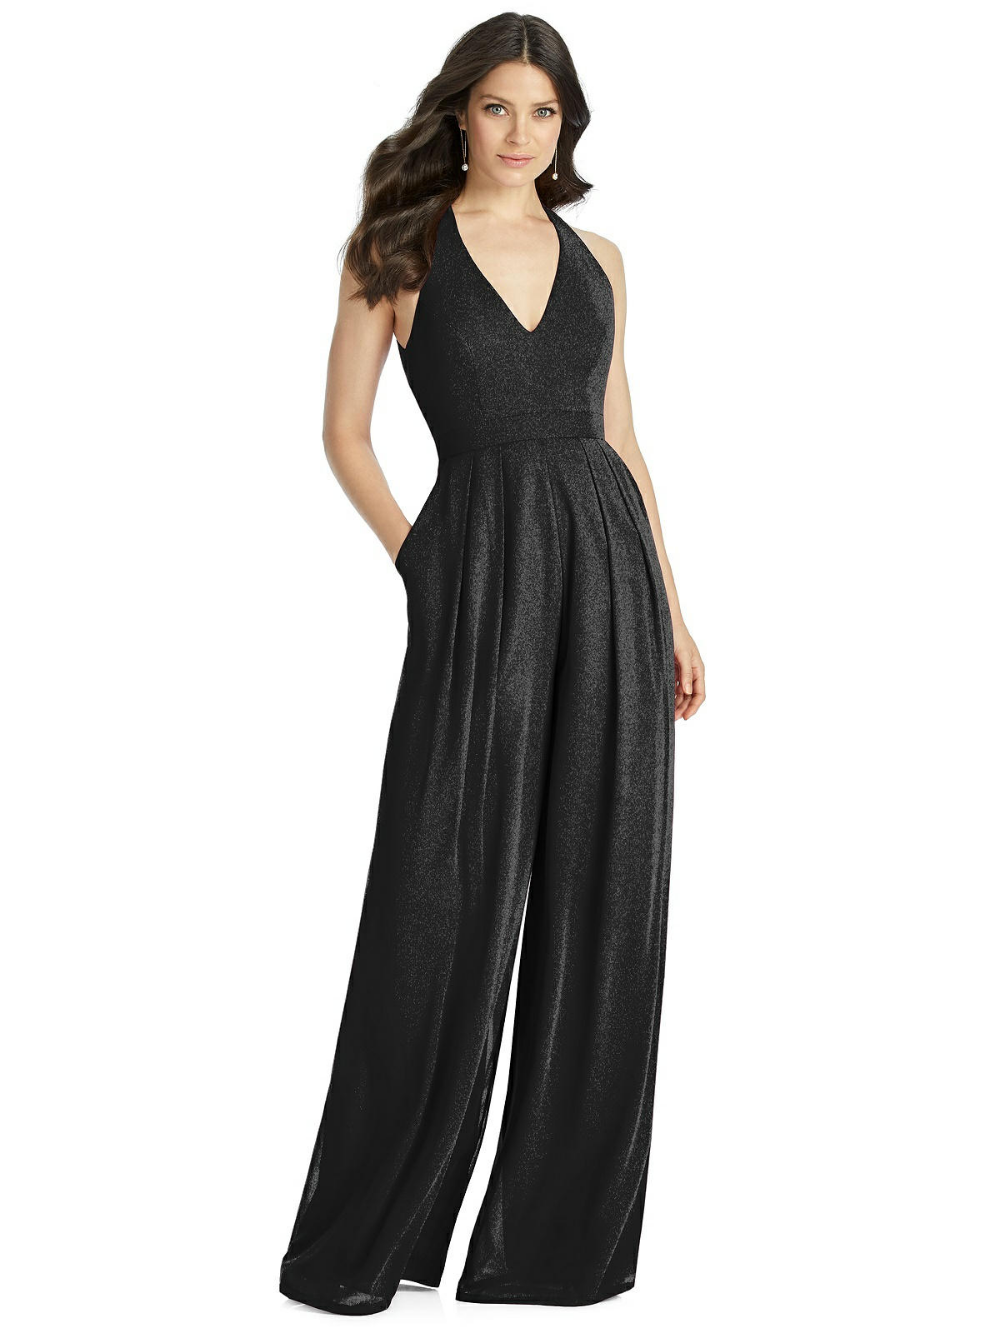 Dessy 3046LS Open Back Bridesmaid Jumpsuit